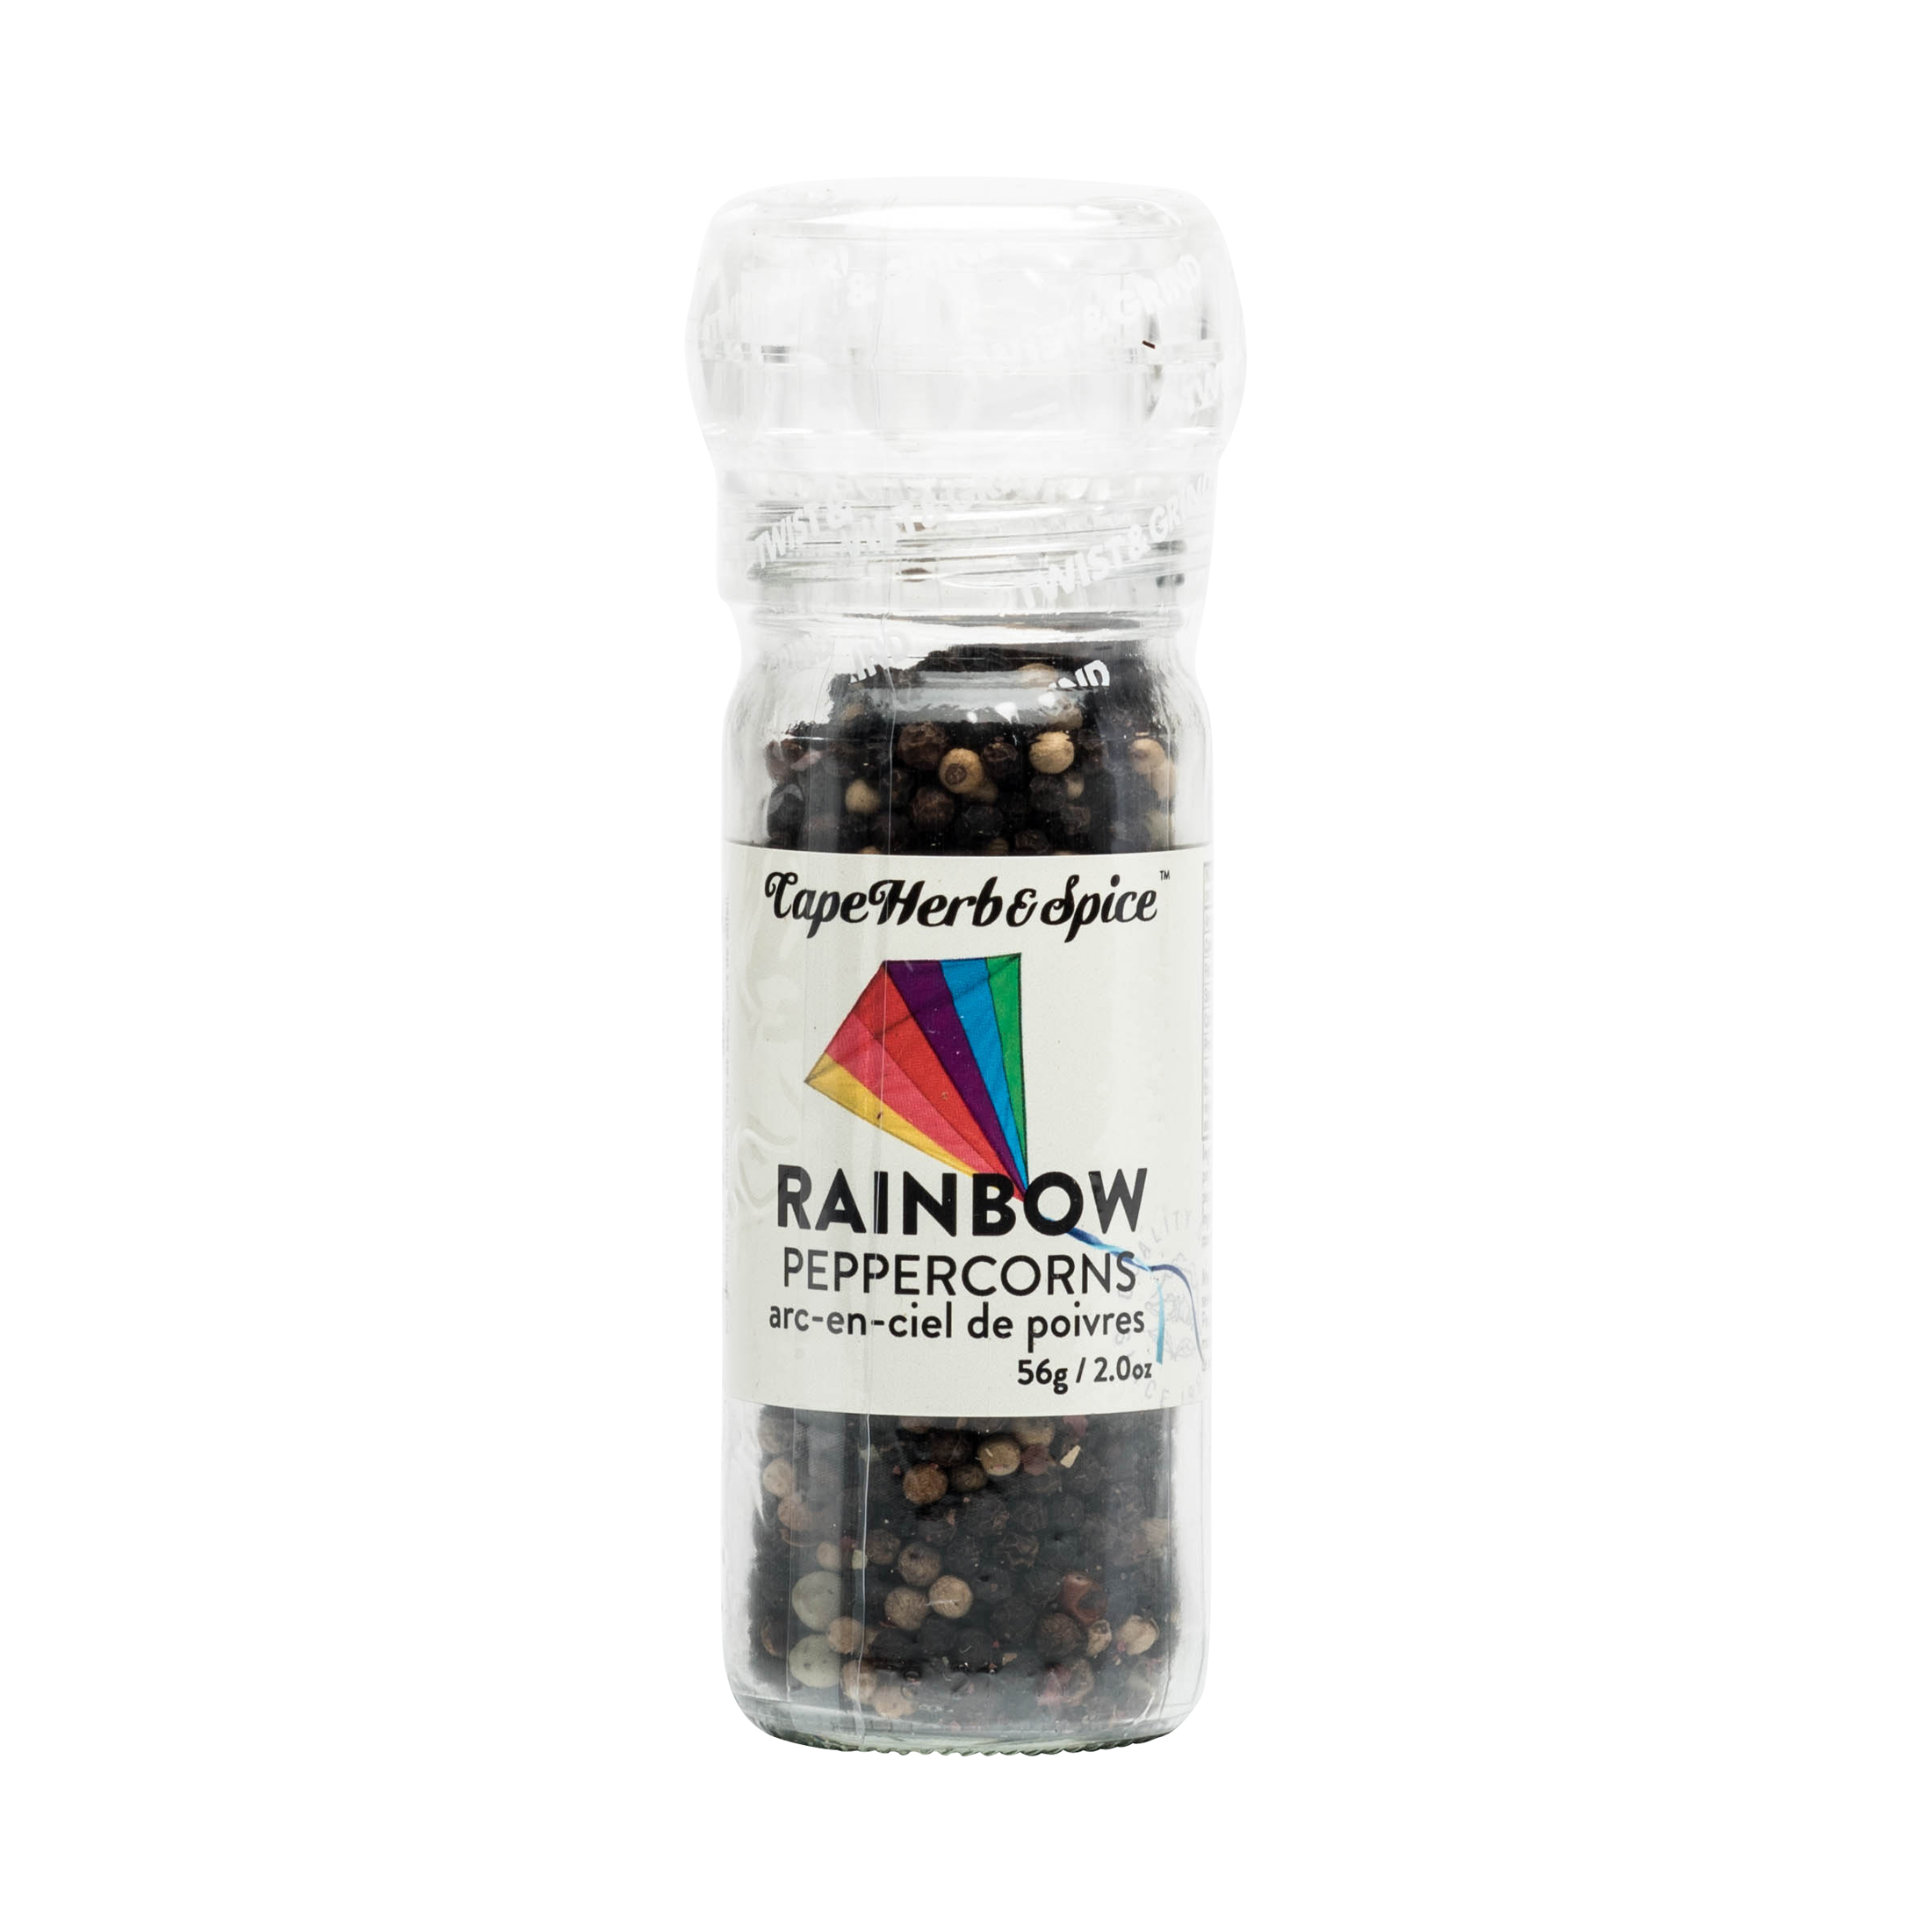 RAINBOW PEPPERCORN GRINDER